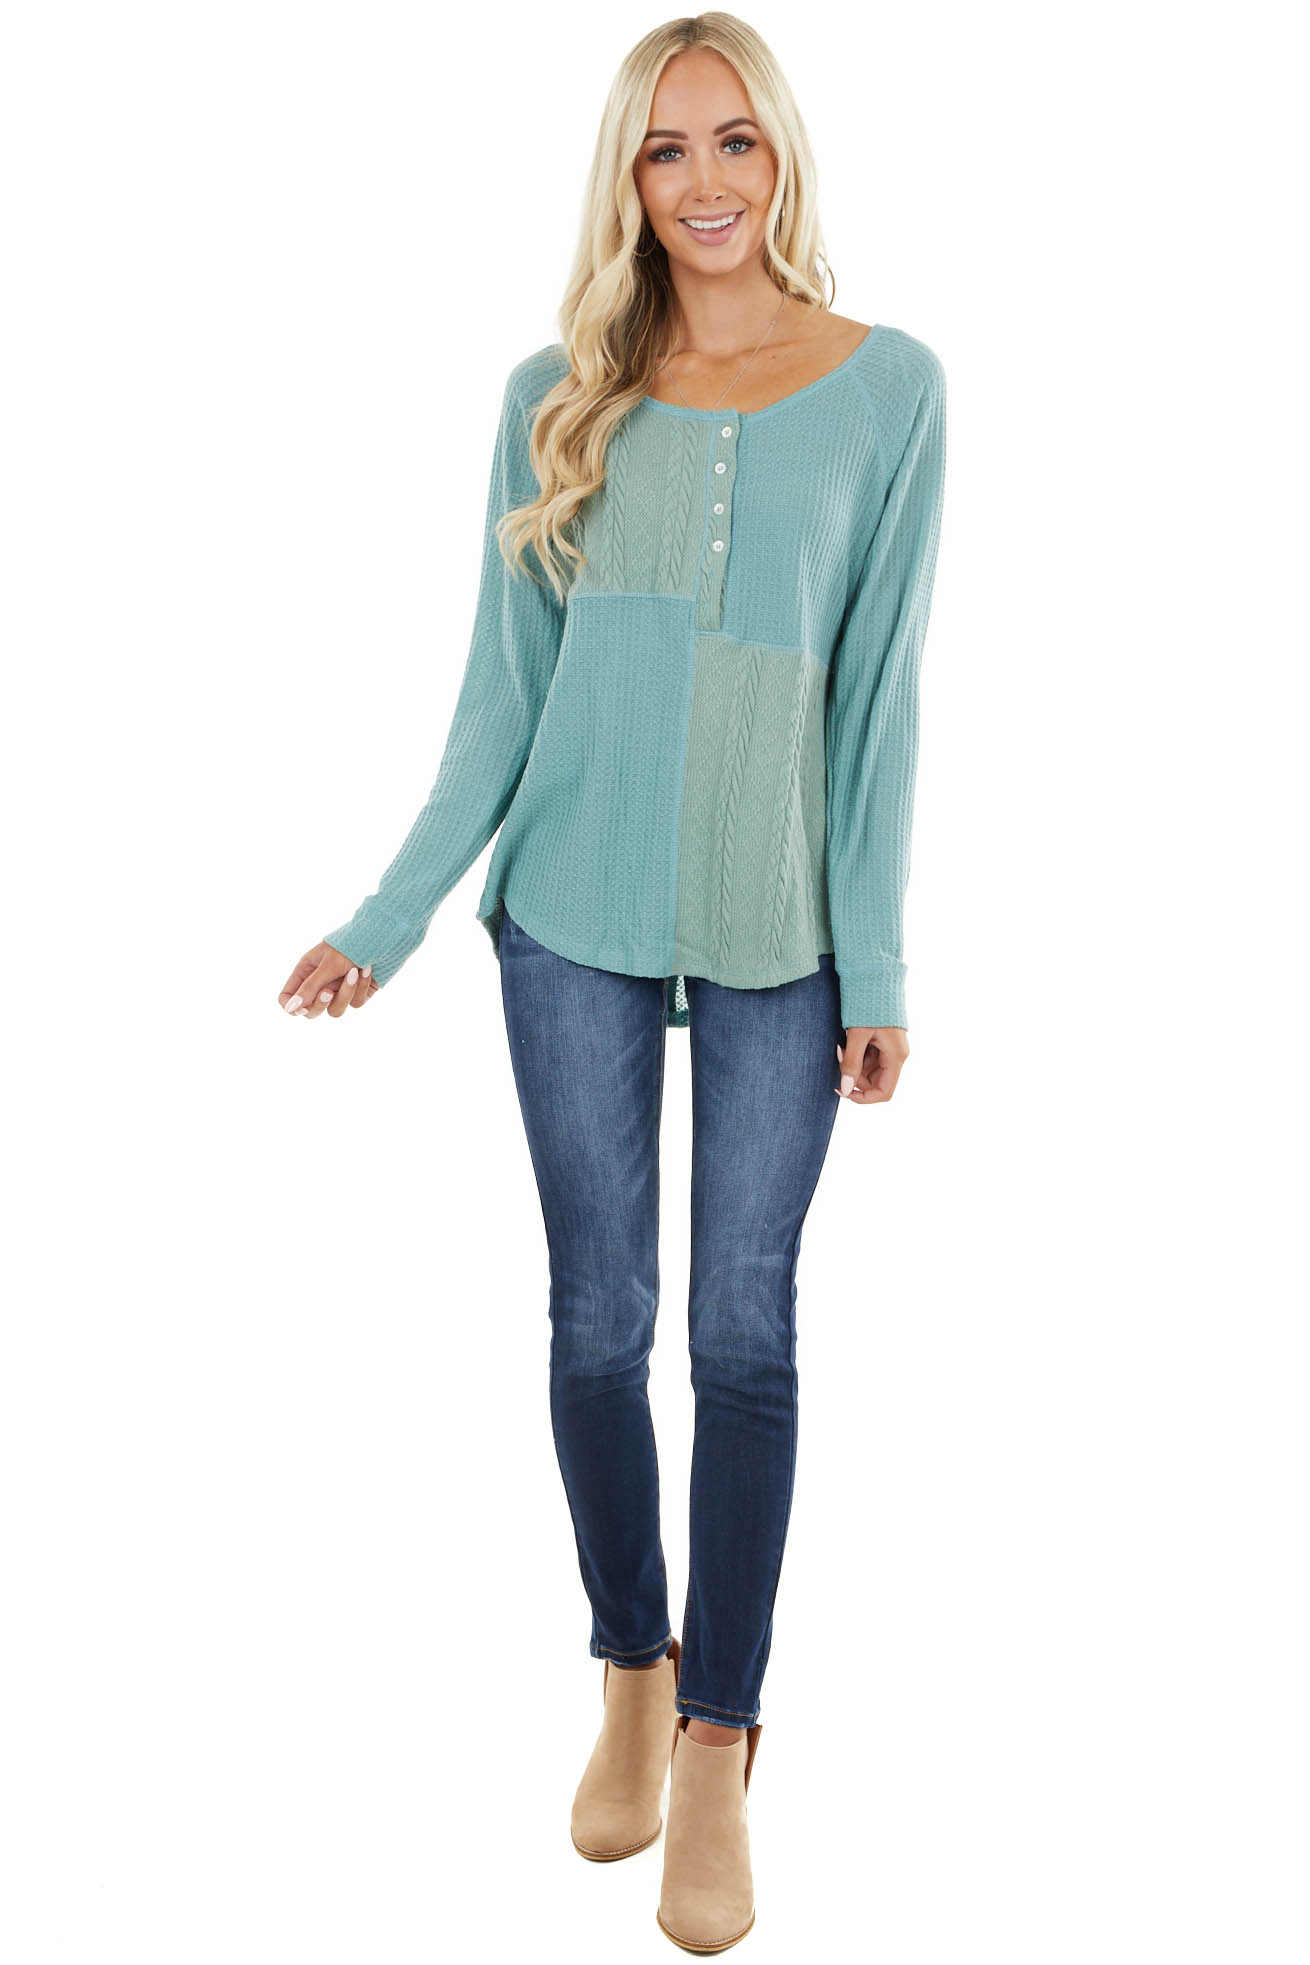 Sage Long Sleeve Top with Buttons and Cable Knit Details